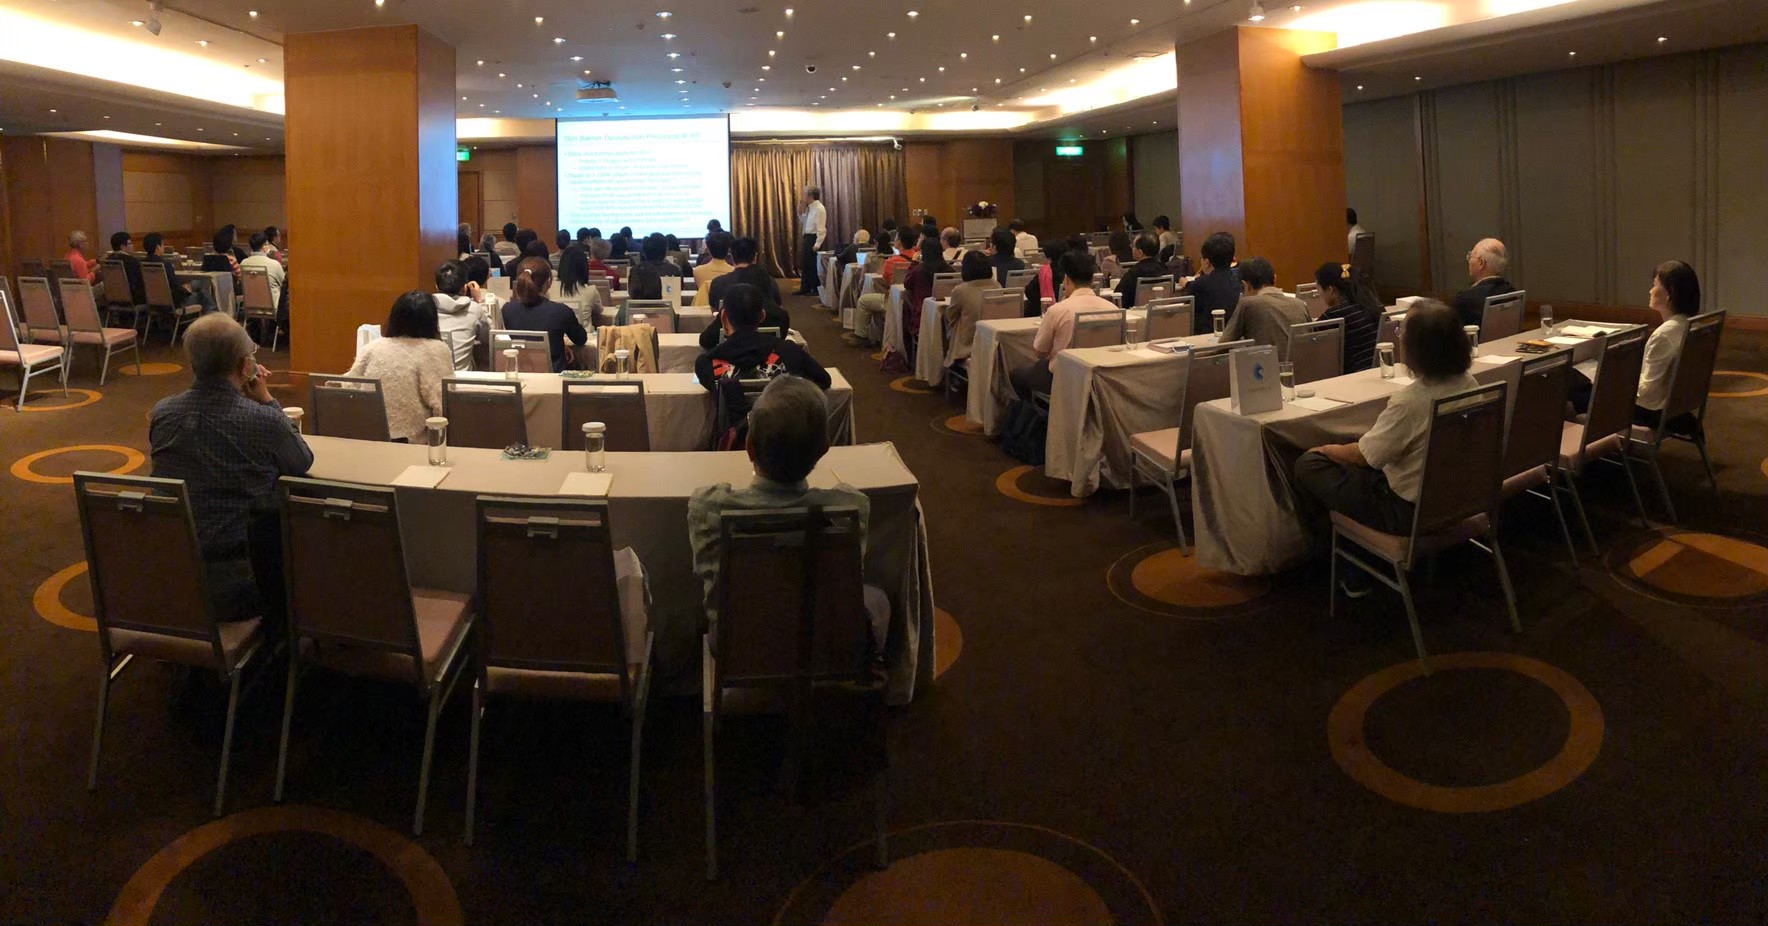 109 Dermatologists attended our first medical symposium on Oct.28, 2018